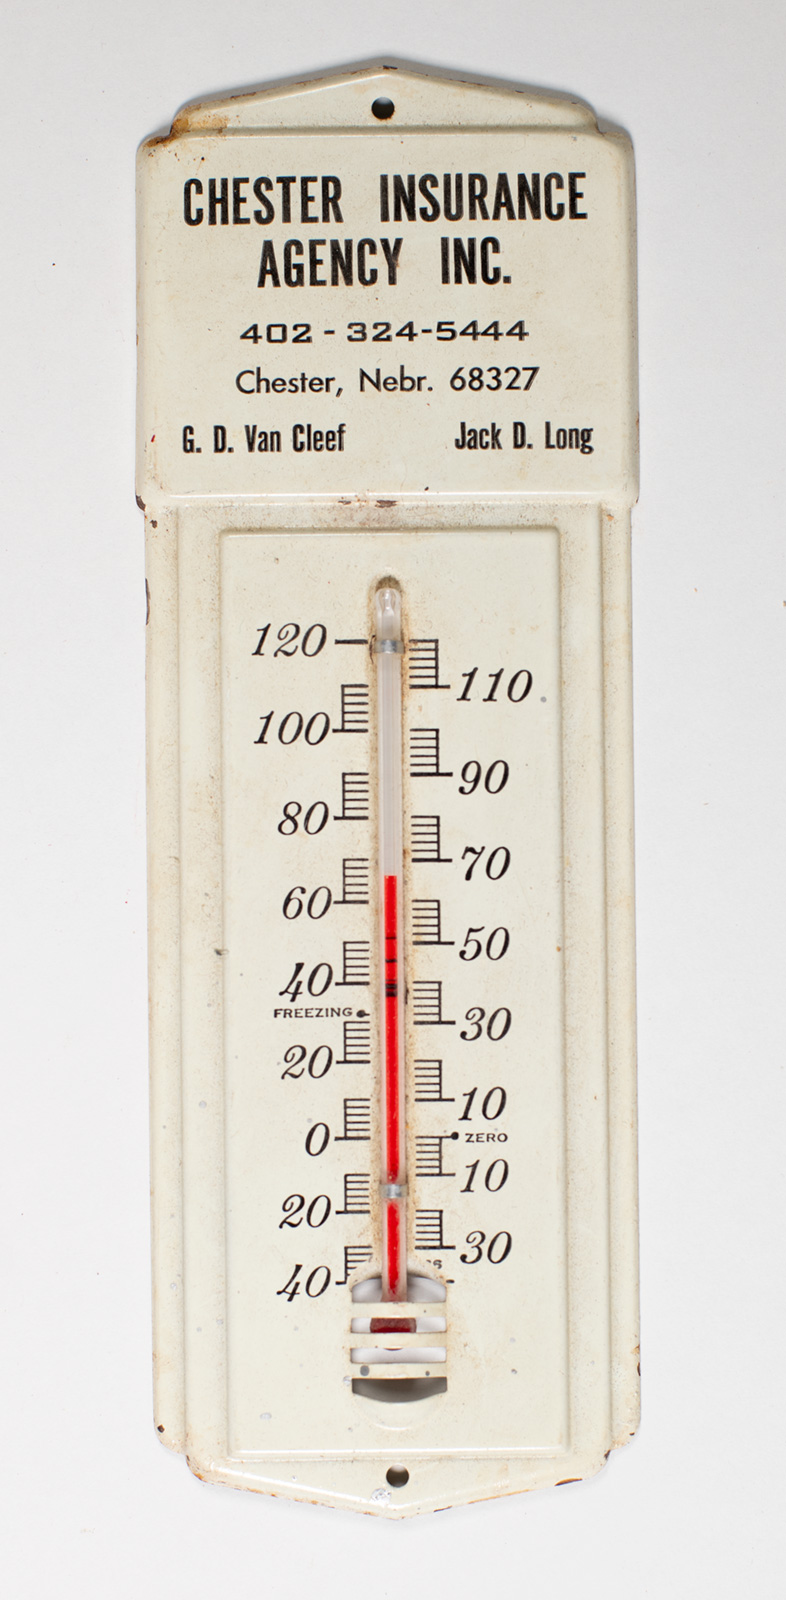 Chester Insurance Agency Thermometer Image